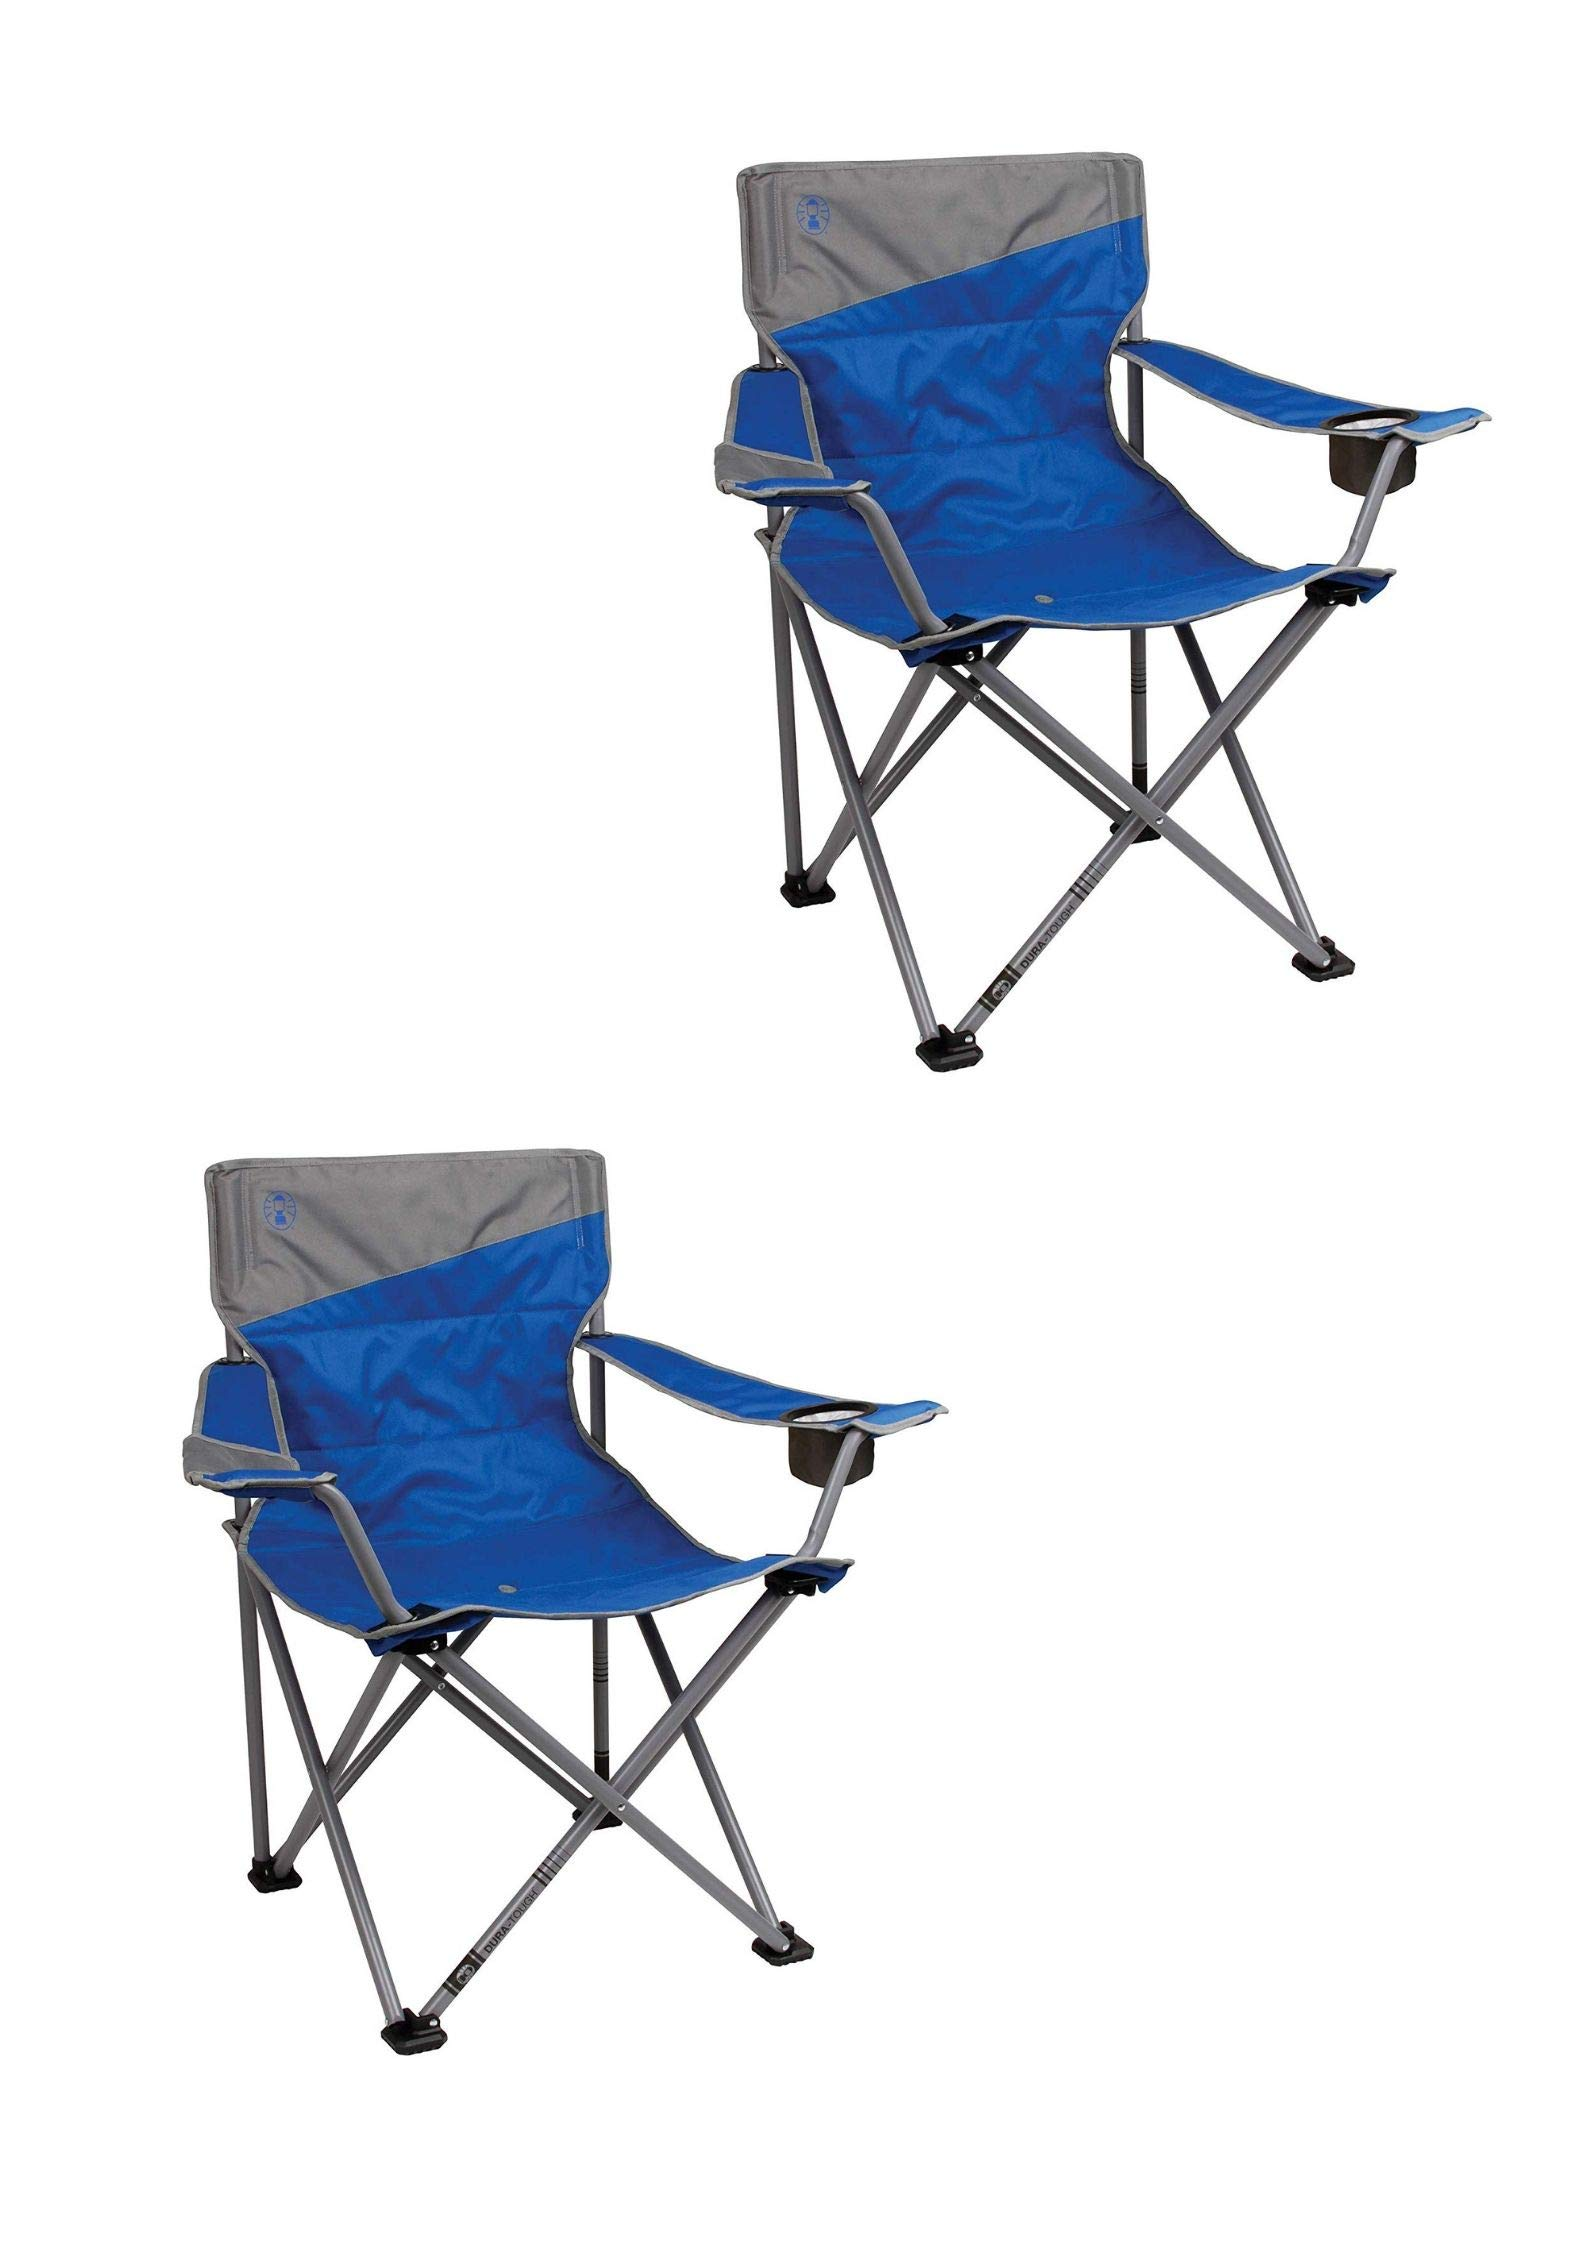 Coleman Big and Tall Portable Folding Camp Chair (Pack of 2)